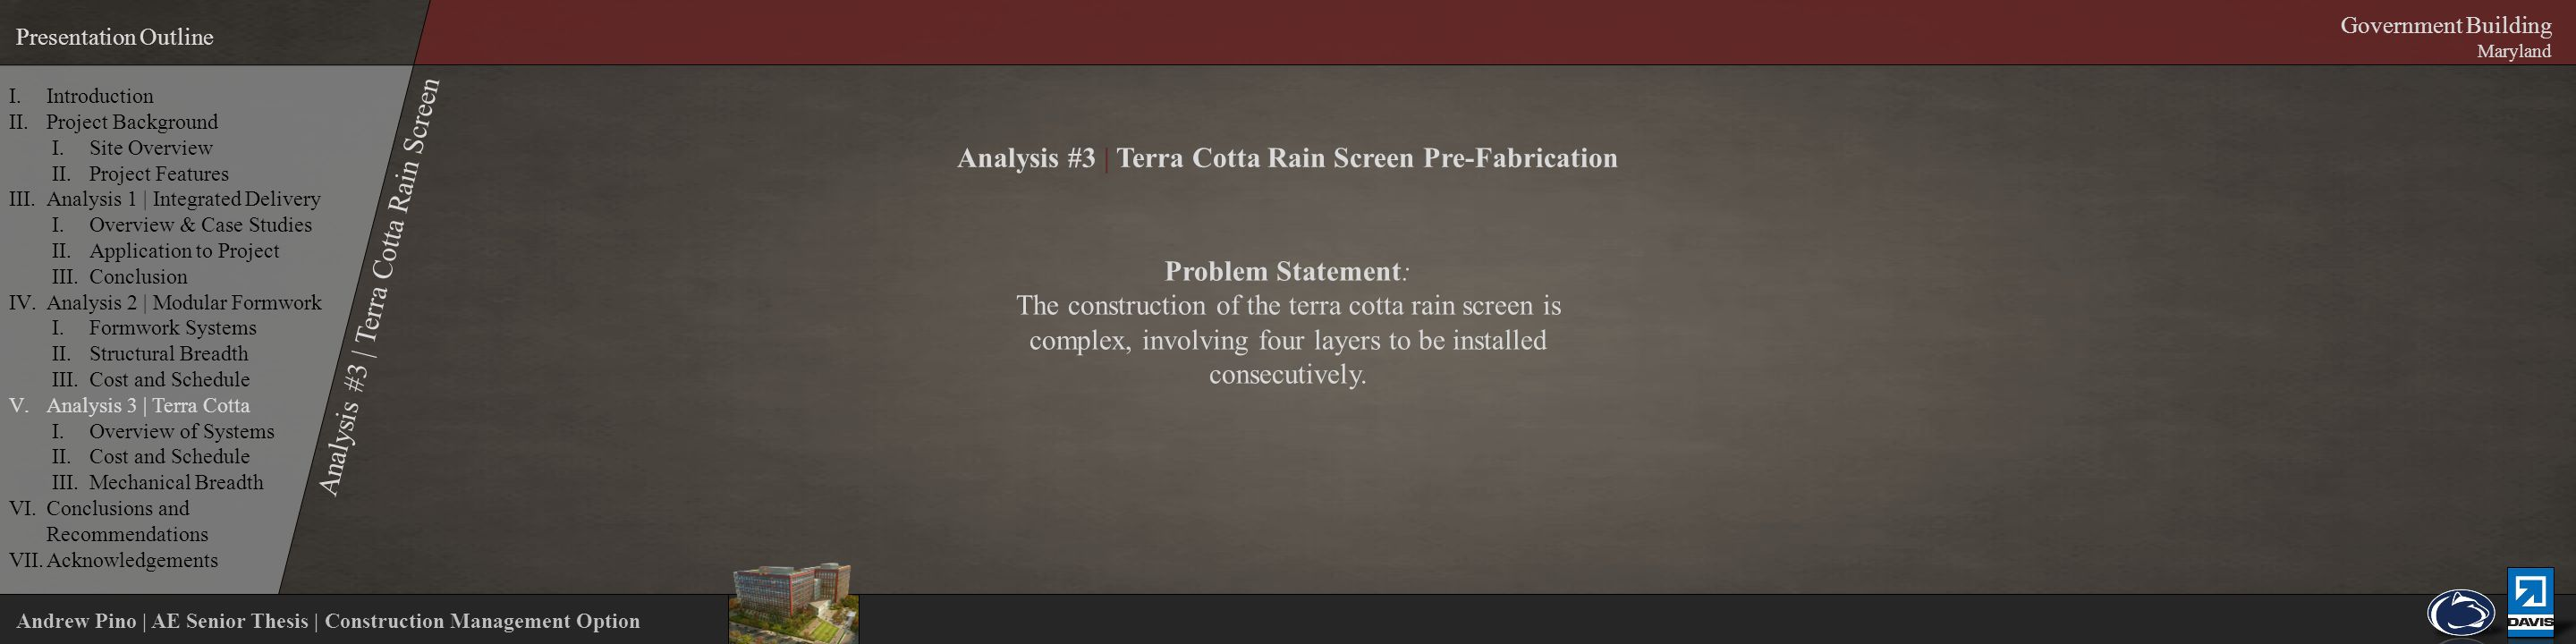 Andrew Pino | AE Senior Thesis | Construction Management Option Presentation Outline Government Building Maryland Analysis #3 | Terra Cotta Rain Screen Pre-Fabrication Problem Statement: The construction of the terra cotta rain screen is complex, involving four layers to be installed consecutively.